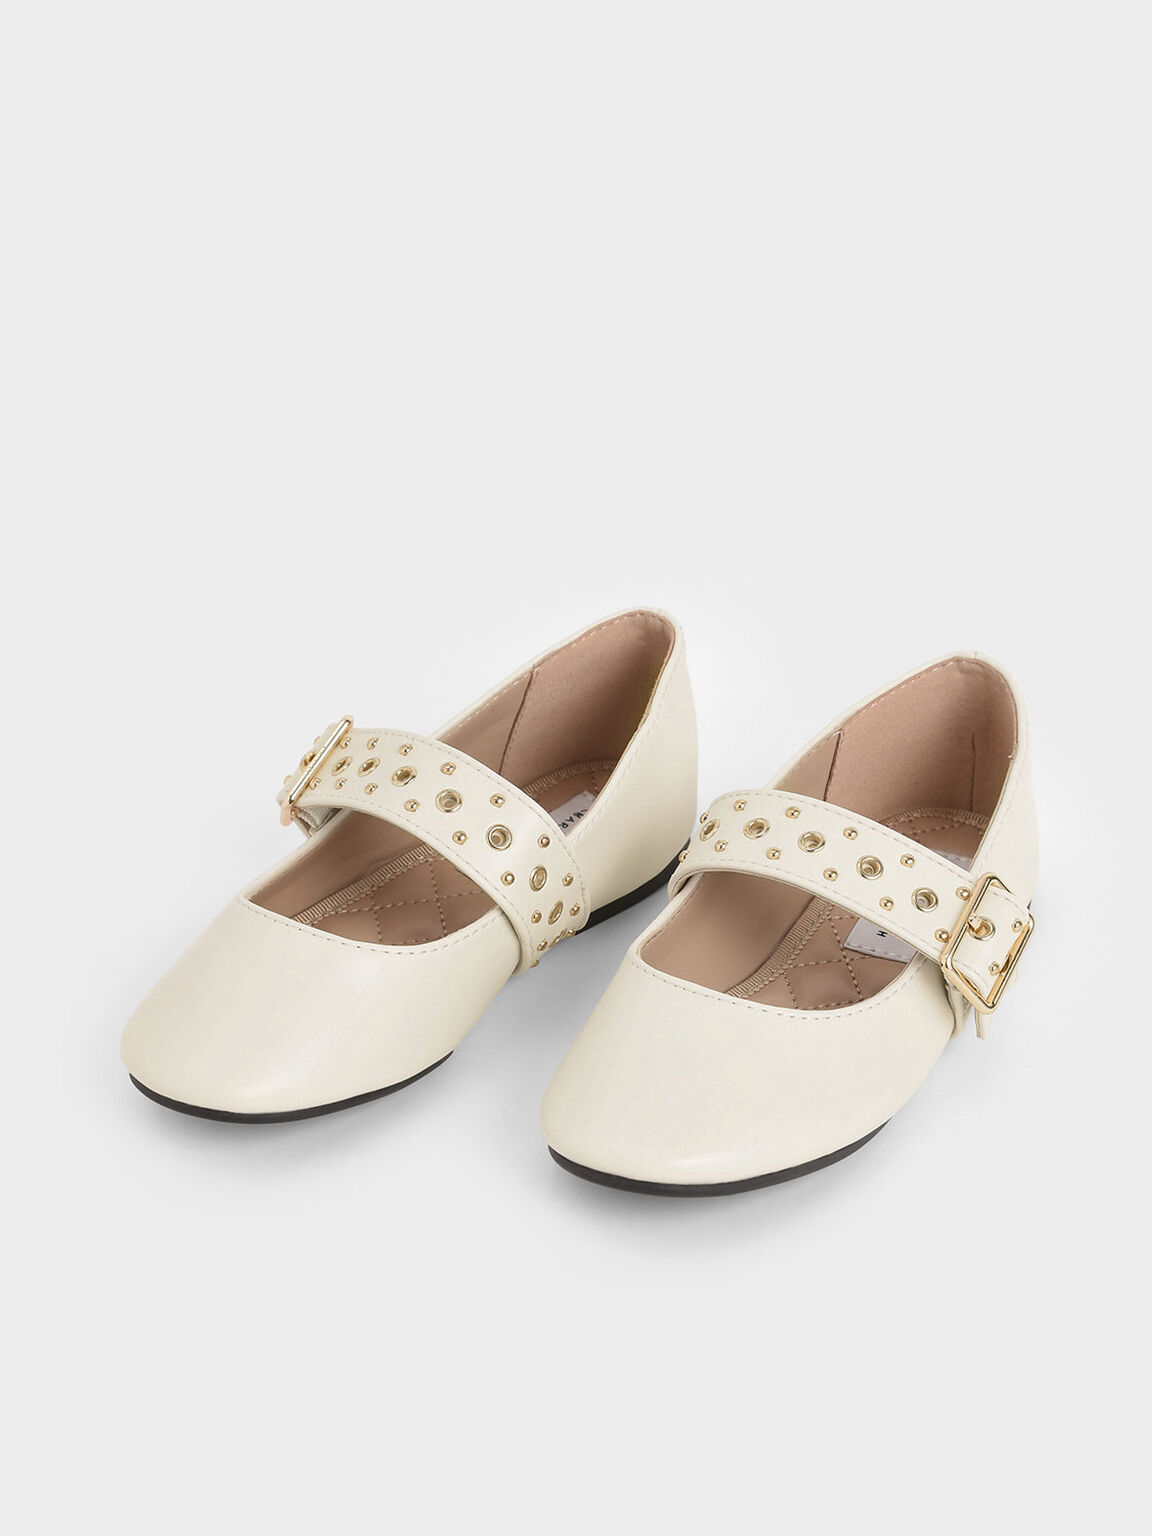 Girls' Studded Mary Jane Flats, Cream, hi-res